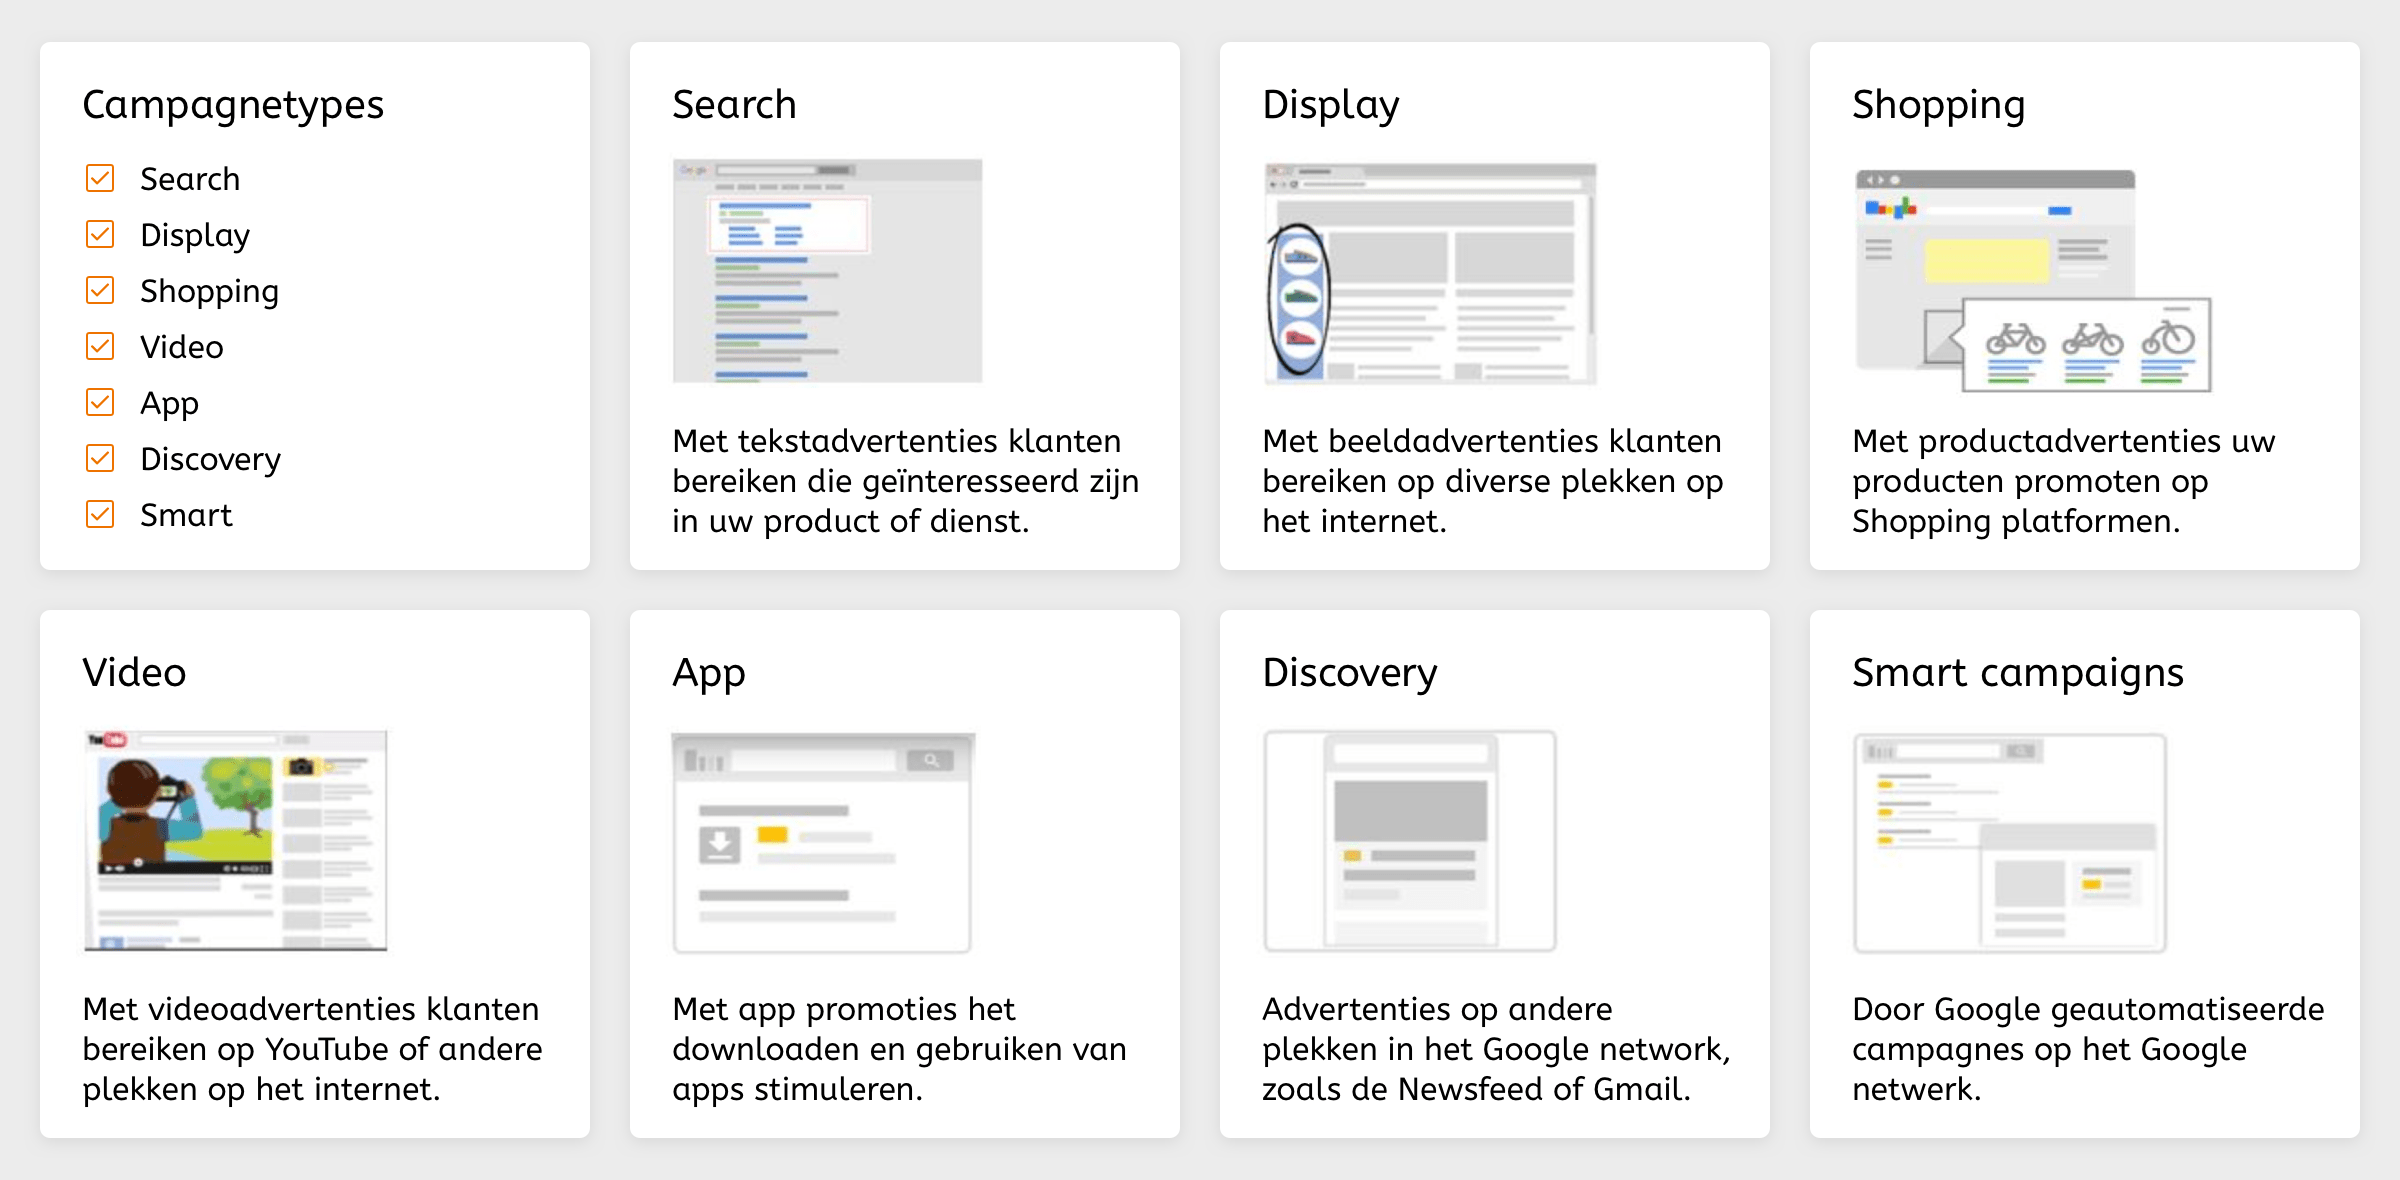 Google Ads campagnetypes